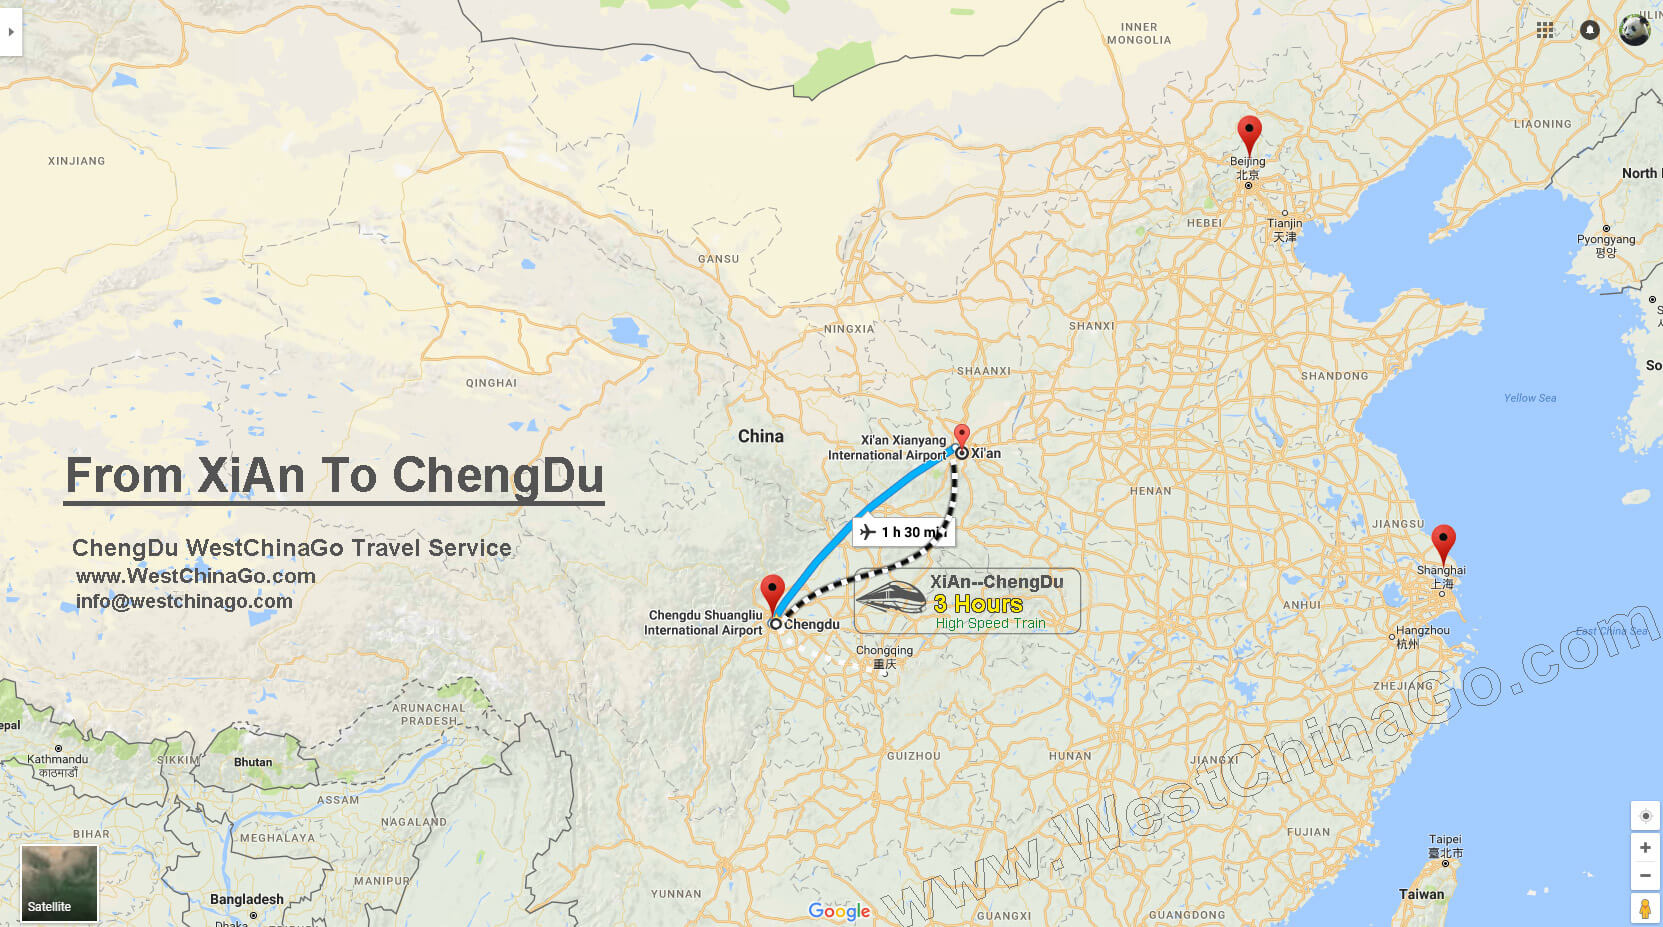 From Xian to ChengDu map